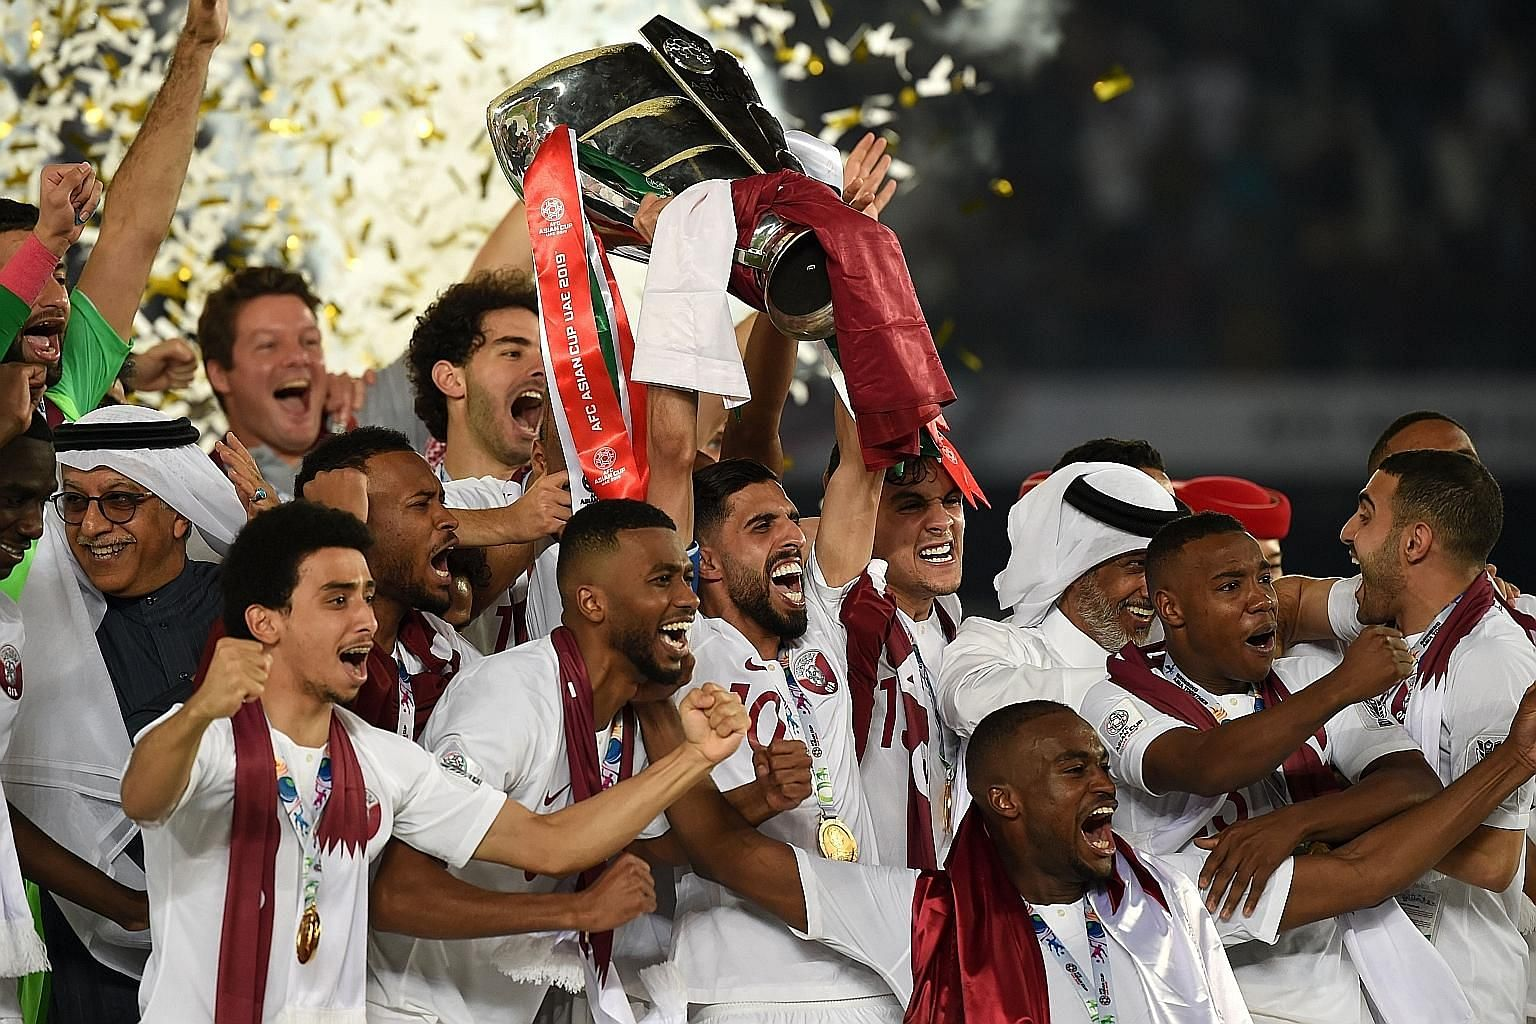 Qatar's players with the trophy after beating Japan 3-1 in the Asian Cup final at the Mohammed Bin Zayed Stadium in Abu Dhabi on Friday. Their head coach Felix Sanchez led Qatar to their first Asian Under-19 title in 2014. They also reached the U-23